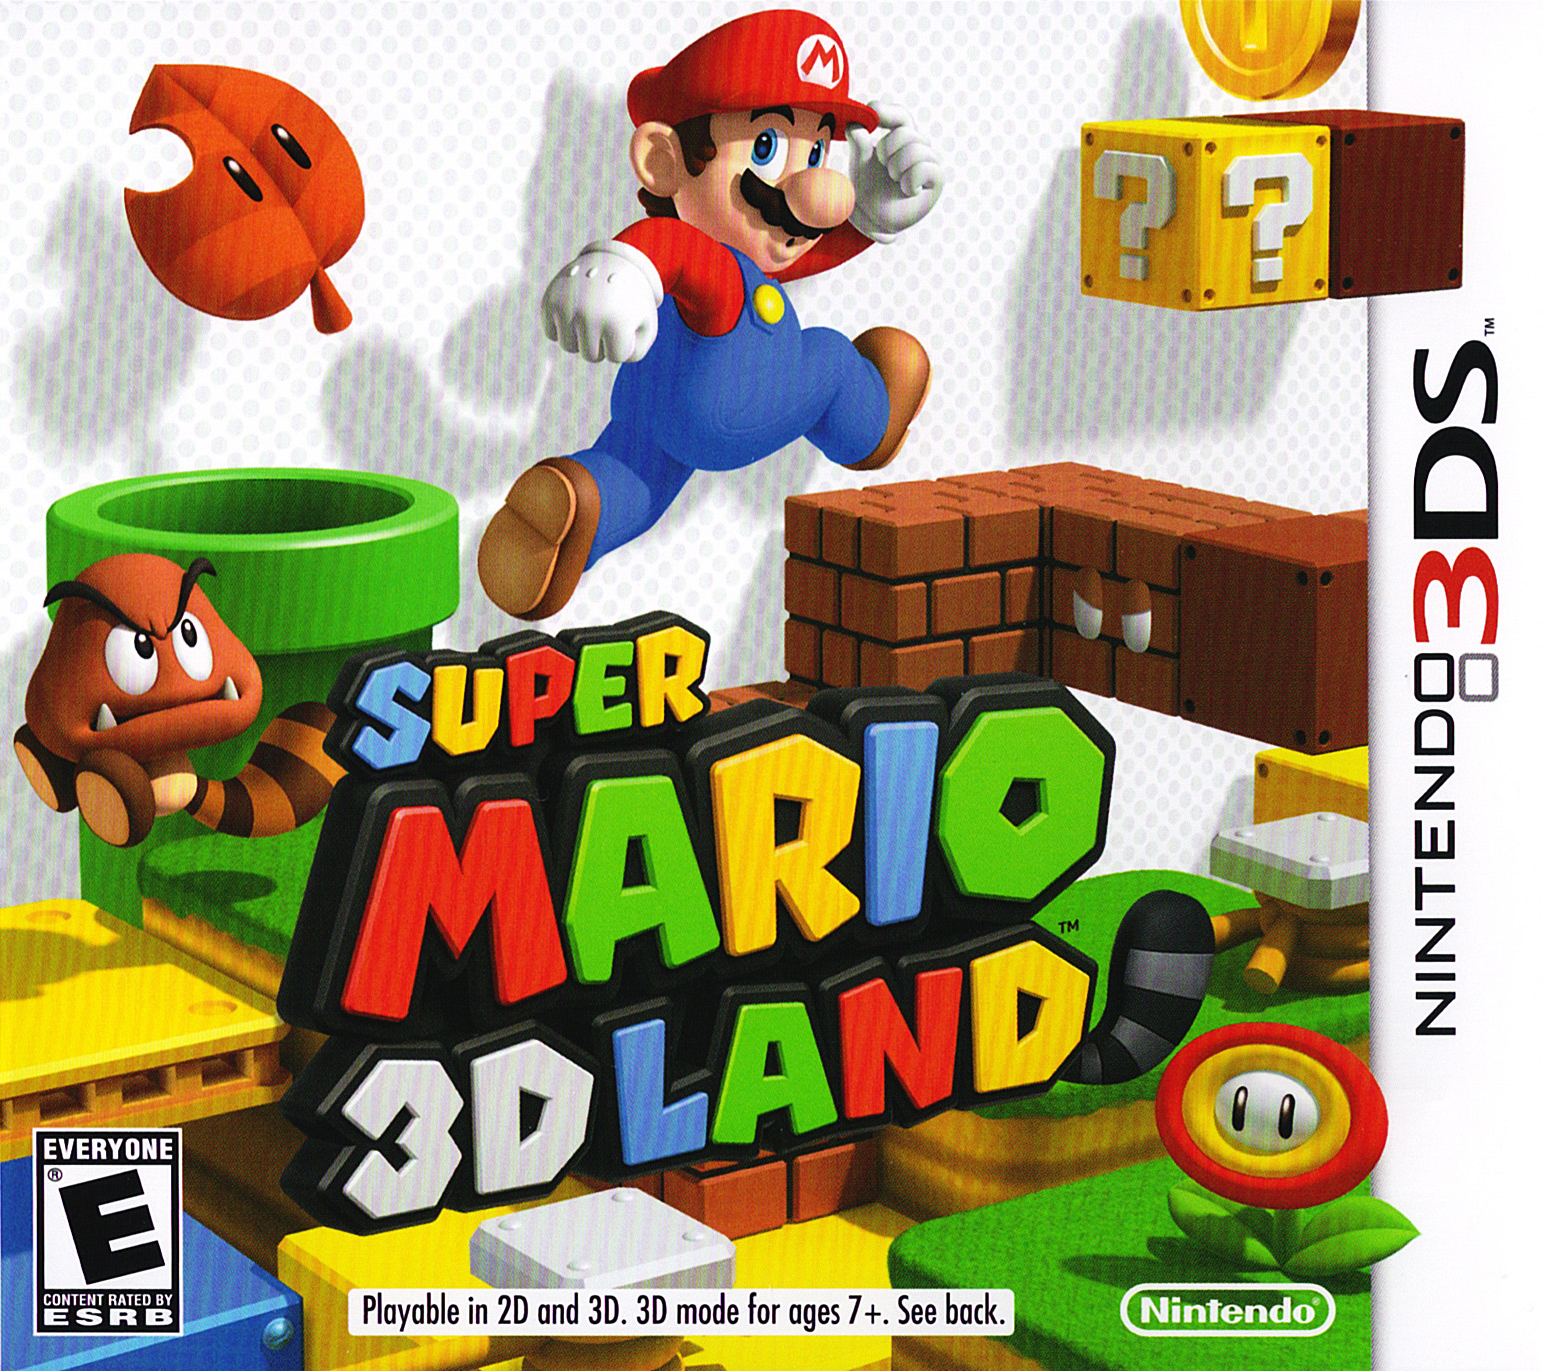 Super Mario 3D Land | Nintendo | FANDOM powered by Wikia